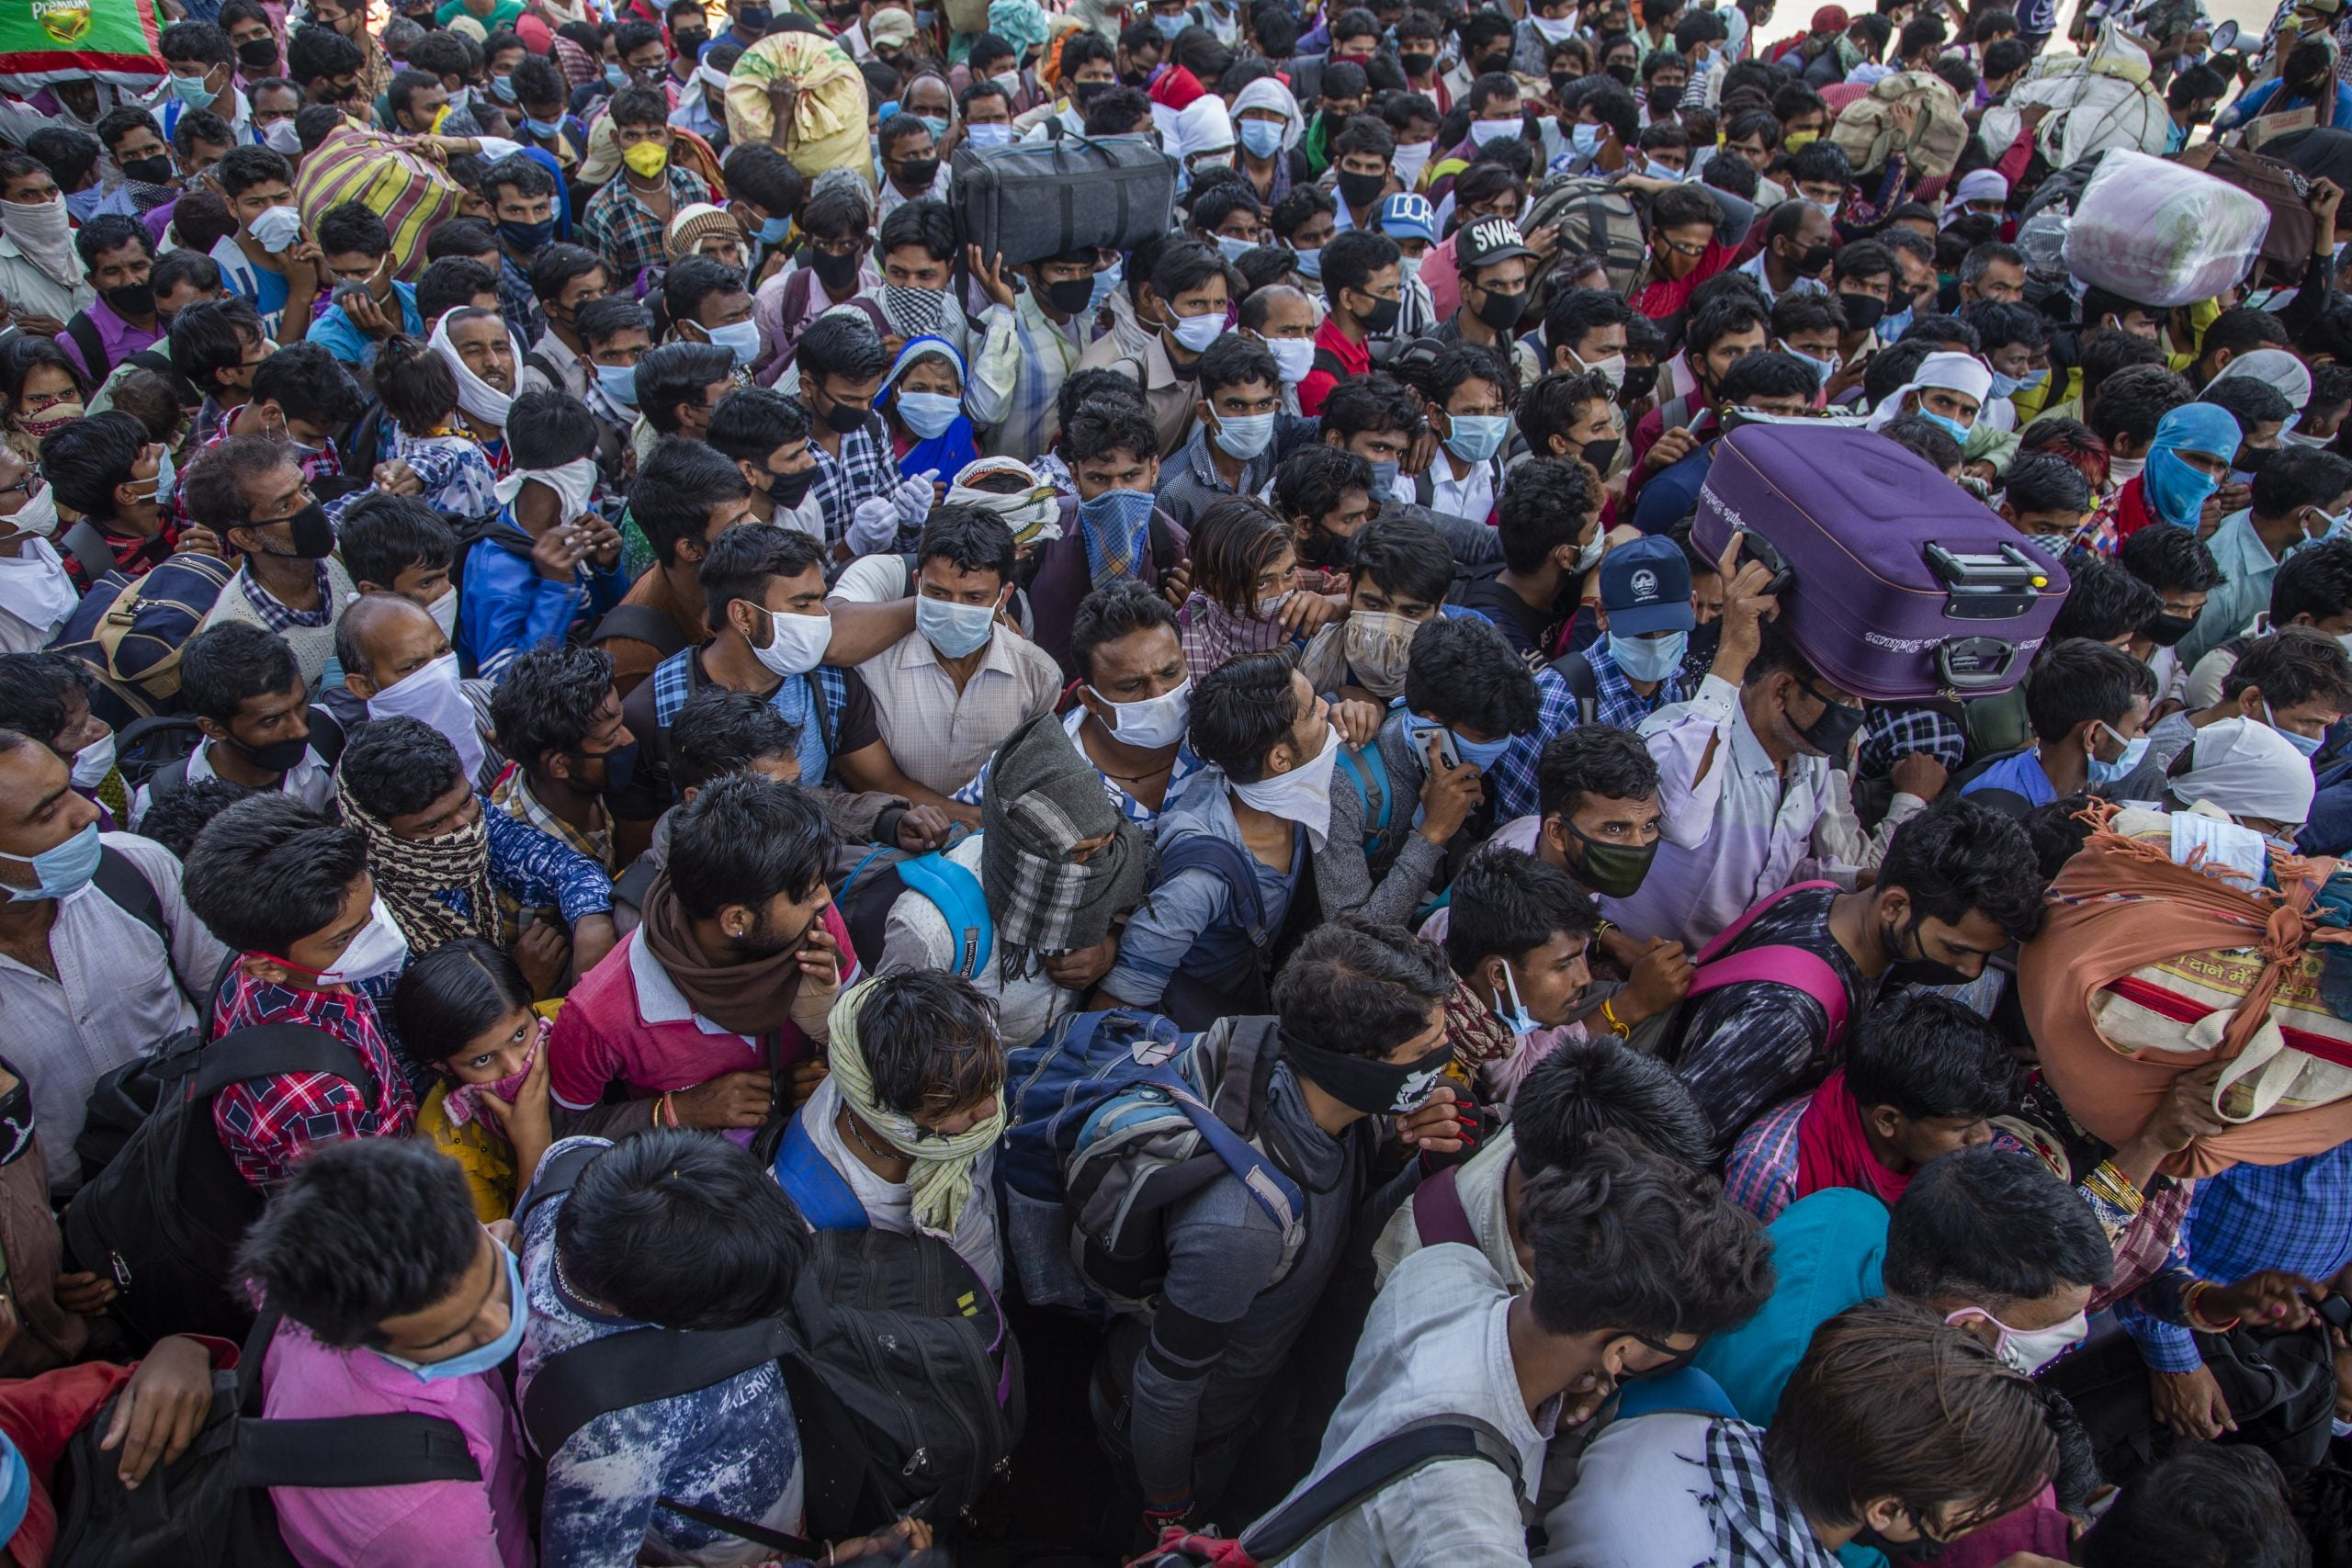 In South Asia, there is no safety net against the pandemic